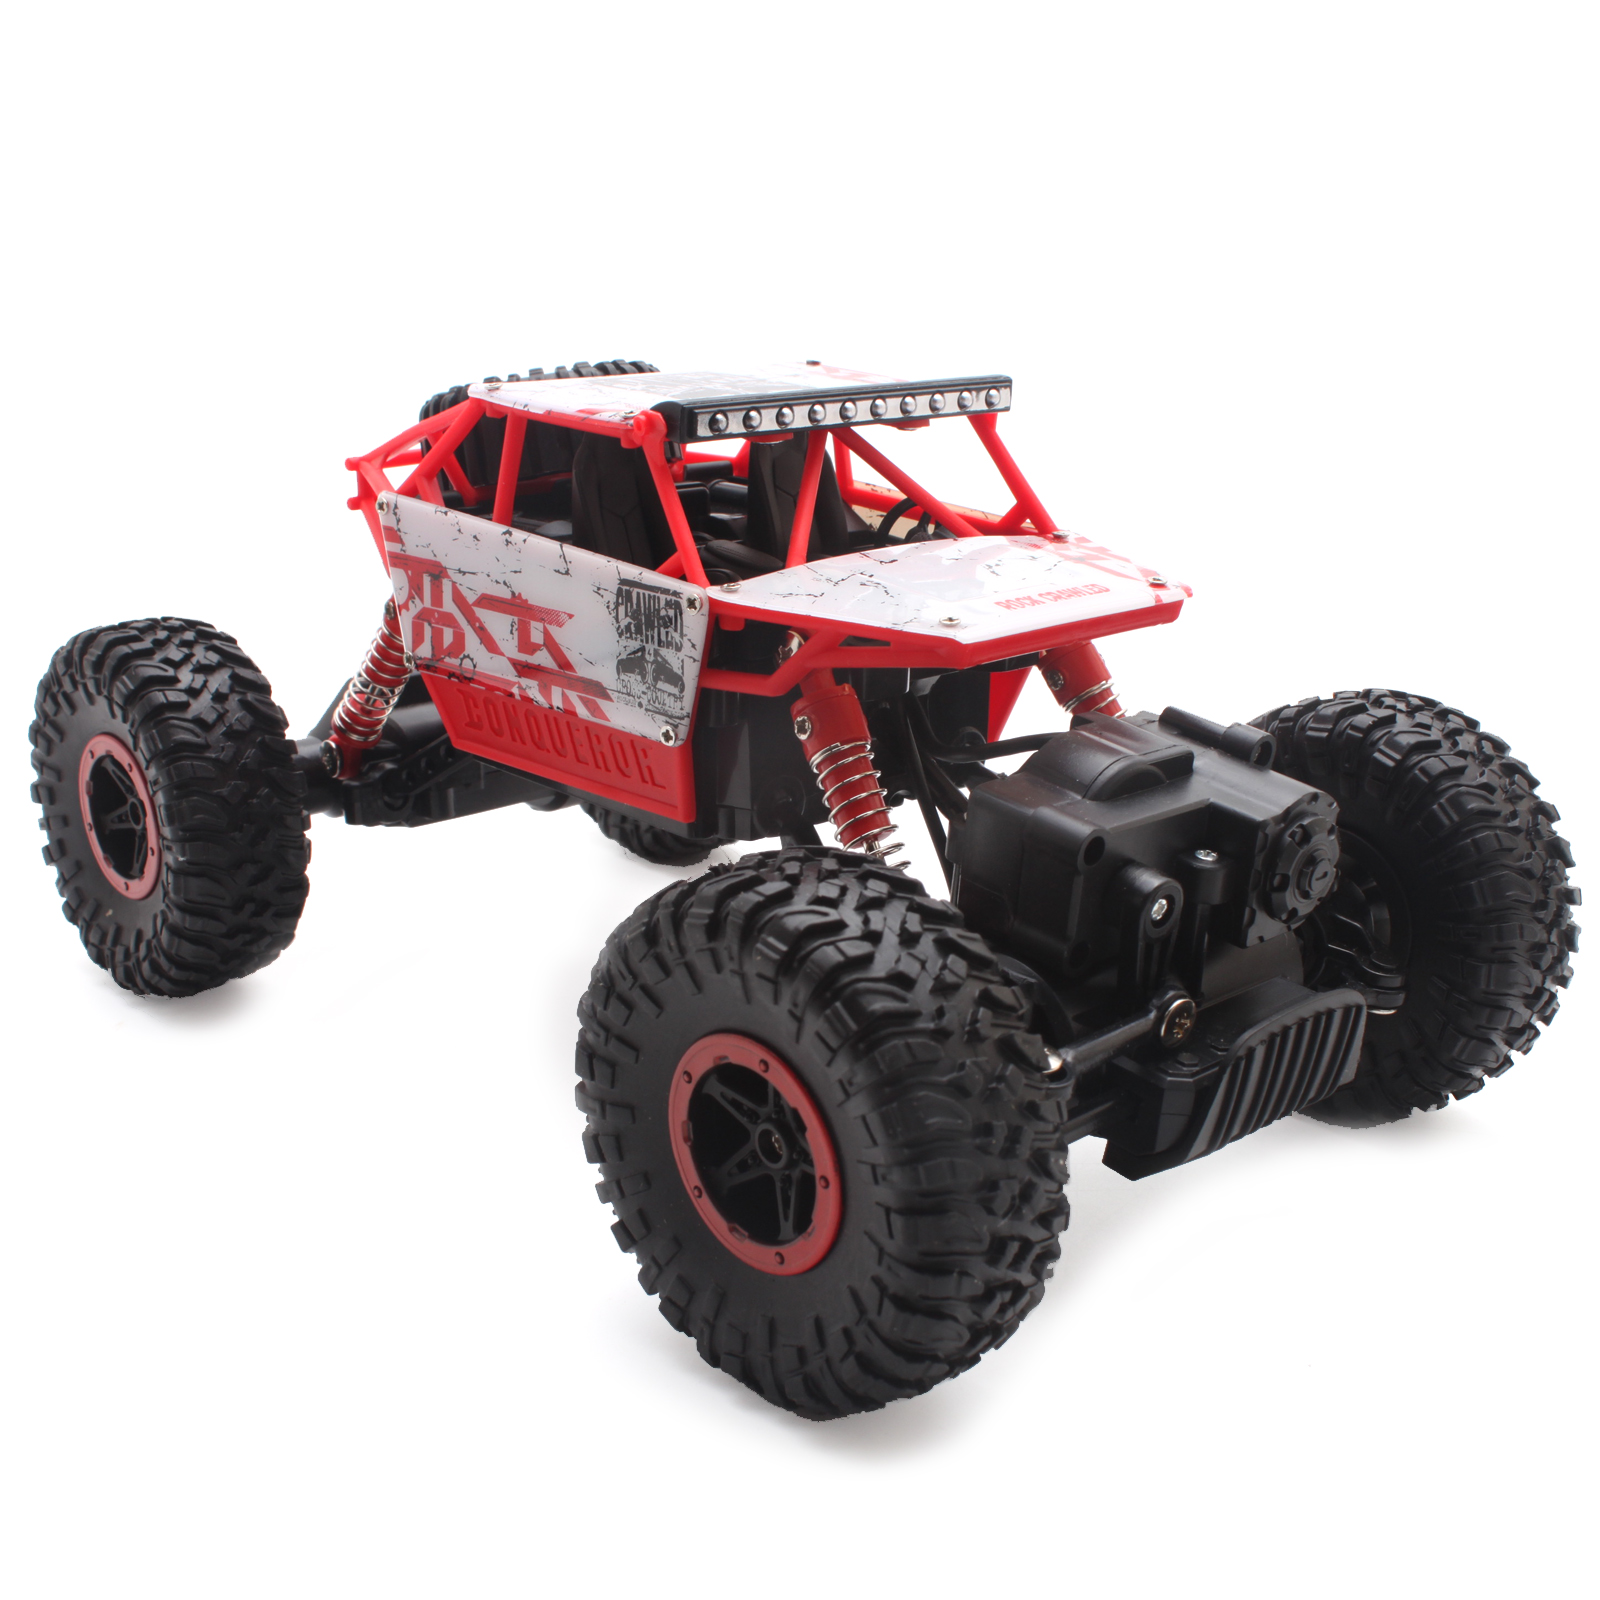 HB-P1801 2.4GHz 4WD 1 18 Scale 4x4 Rock Crawler Off-road Buggy Vehicle RC Car Truck by cheerwing